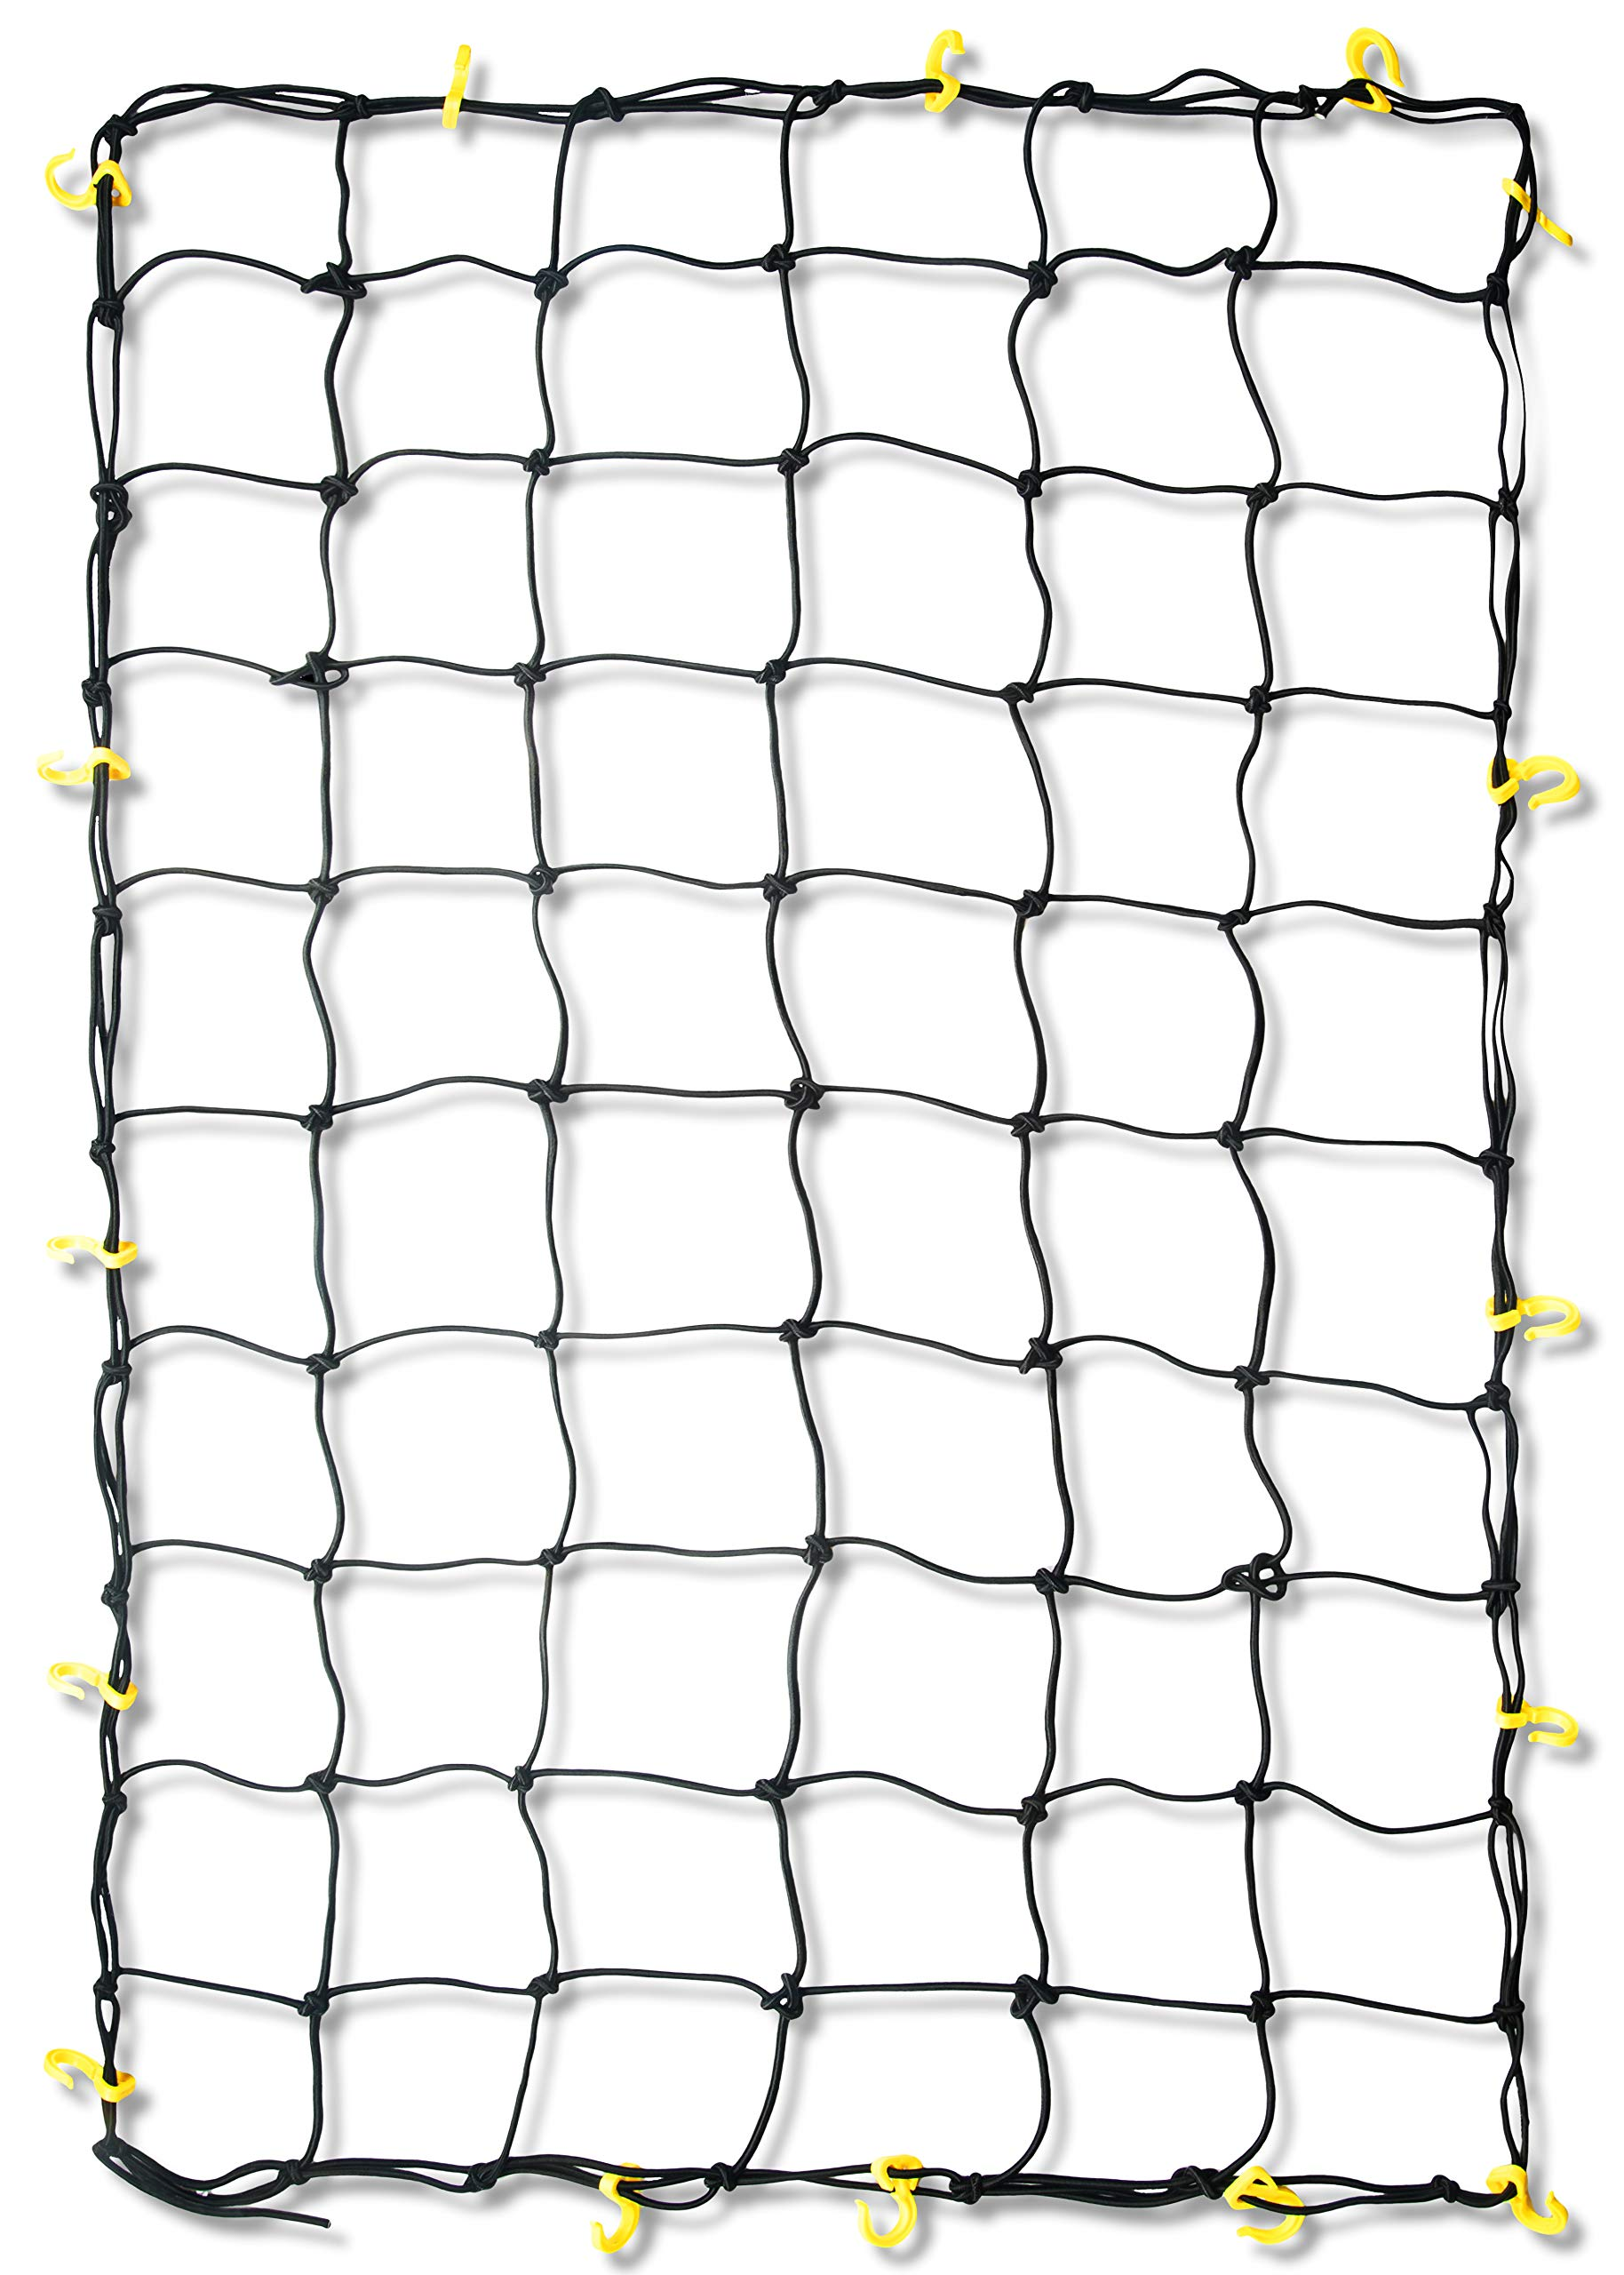 TOOLUXE 50969L Adjustable Cargo Net | 3' x 5' | 16 Sturdy Nylon Hooks | Ideal for Moving, Camping, and Trucks